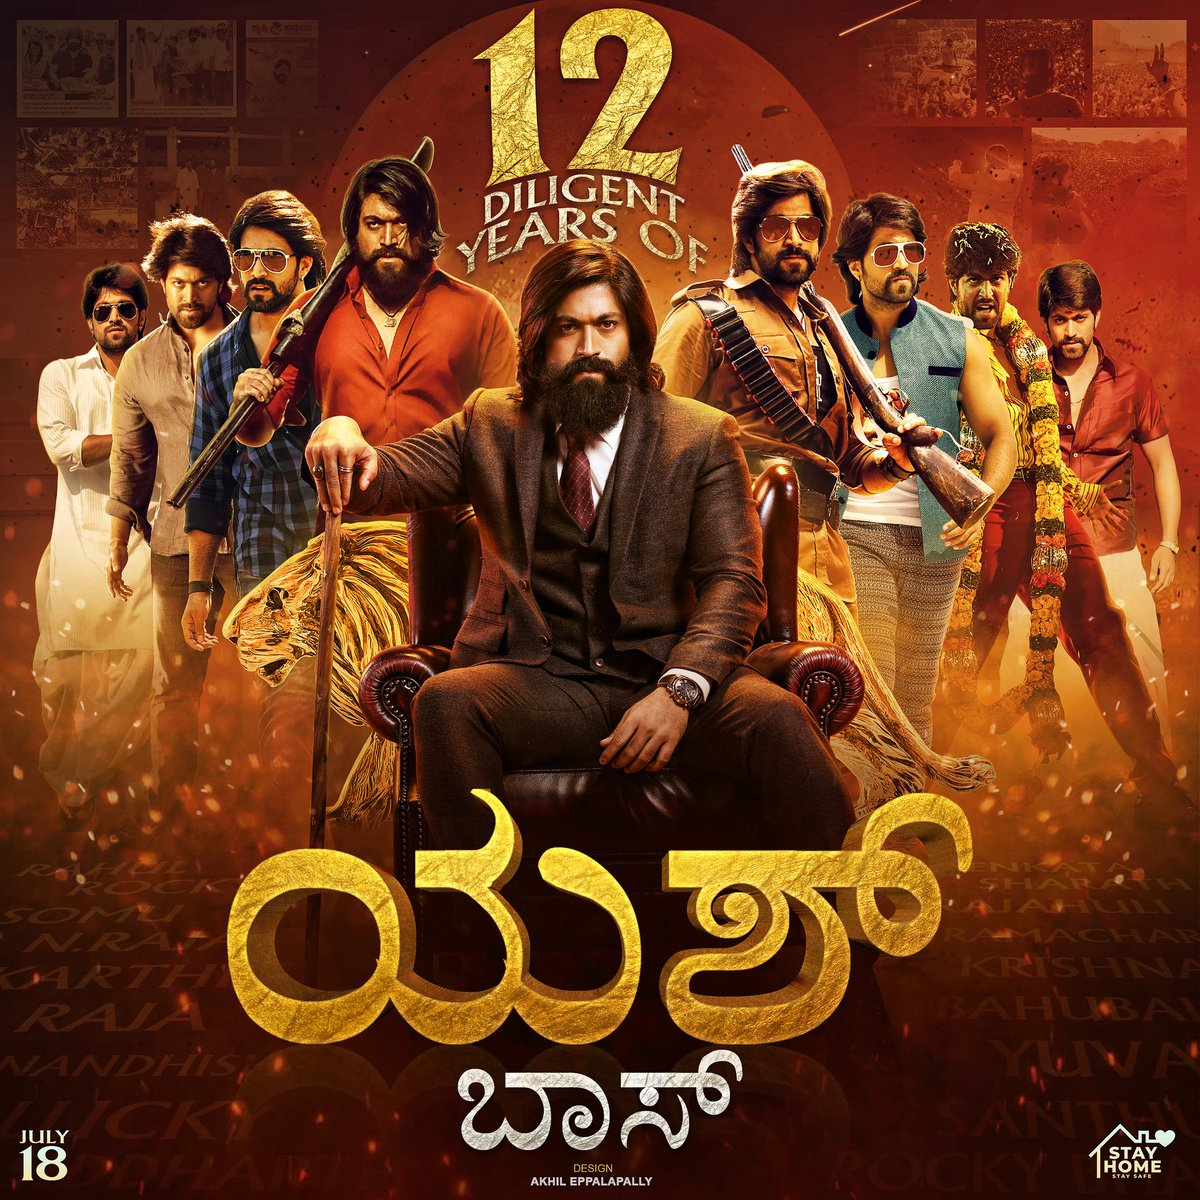 #12YearsOfYASHismCDP   One of the most happening Indian movie stars now. #KGF 🔥  Designed By @akhilimz  @TheNameIsYash #KGFChapter2 👍  https://t.co/V5g3cZOx4o